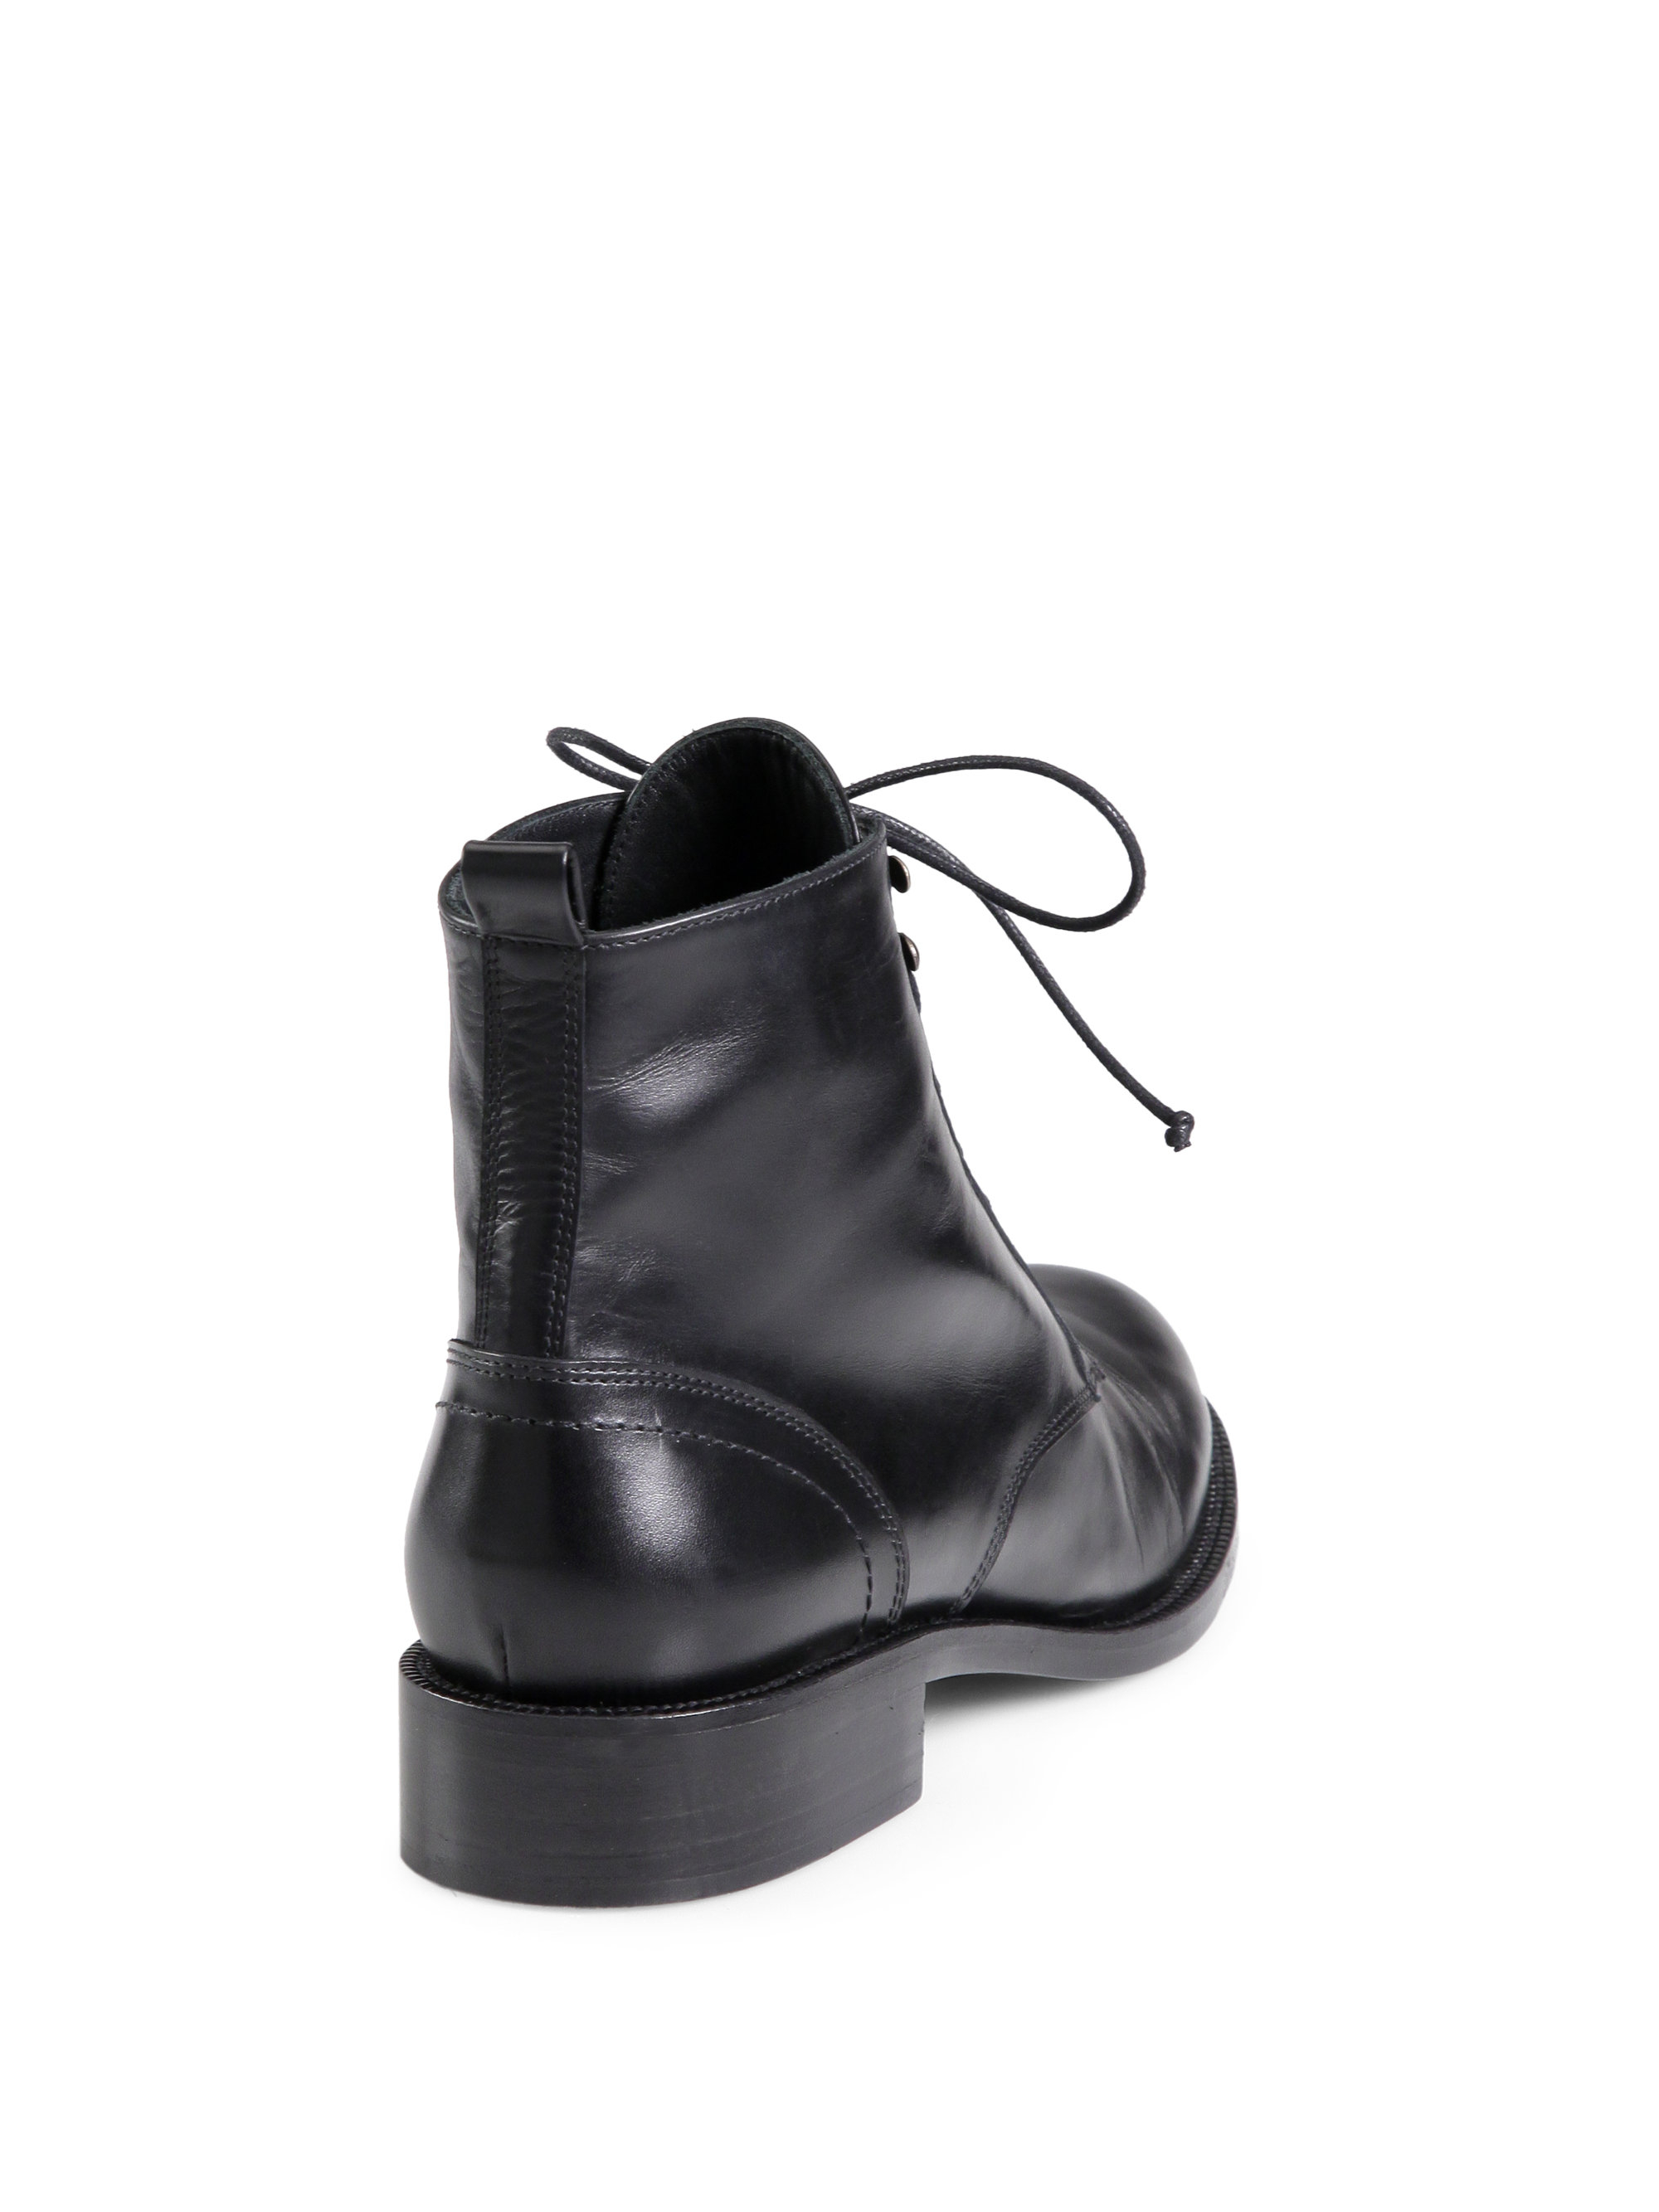 Saint laurent Patti Leather Lace-Up Ankle Boots in Black | Lyst